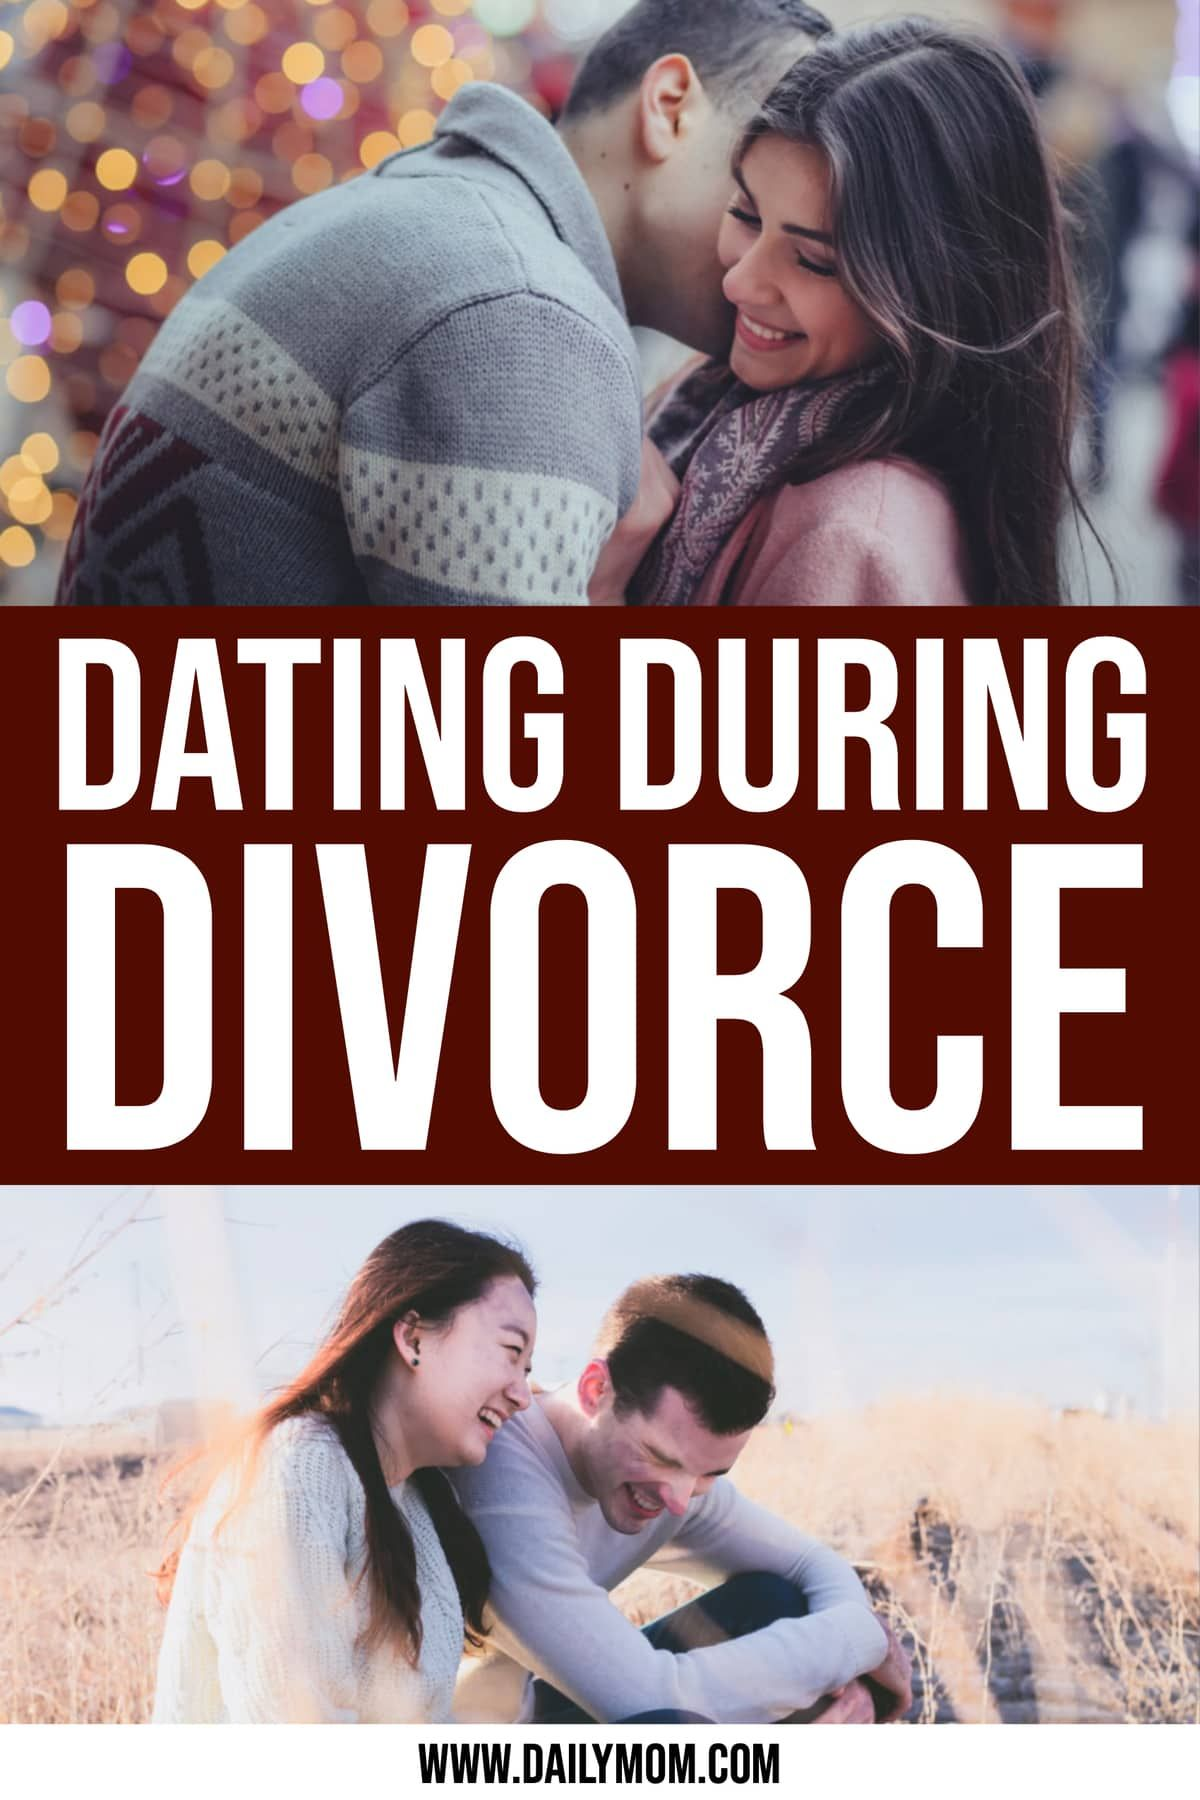 Dating according to the bible